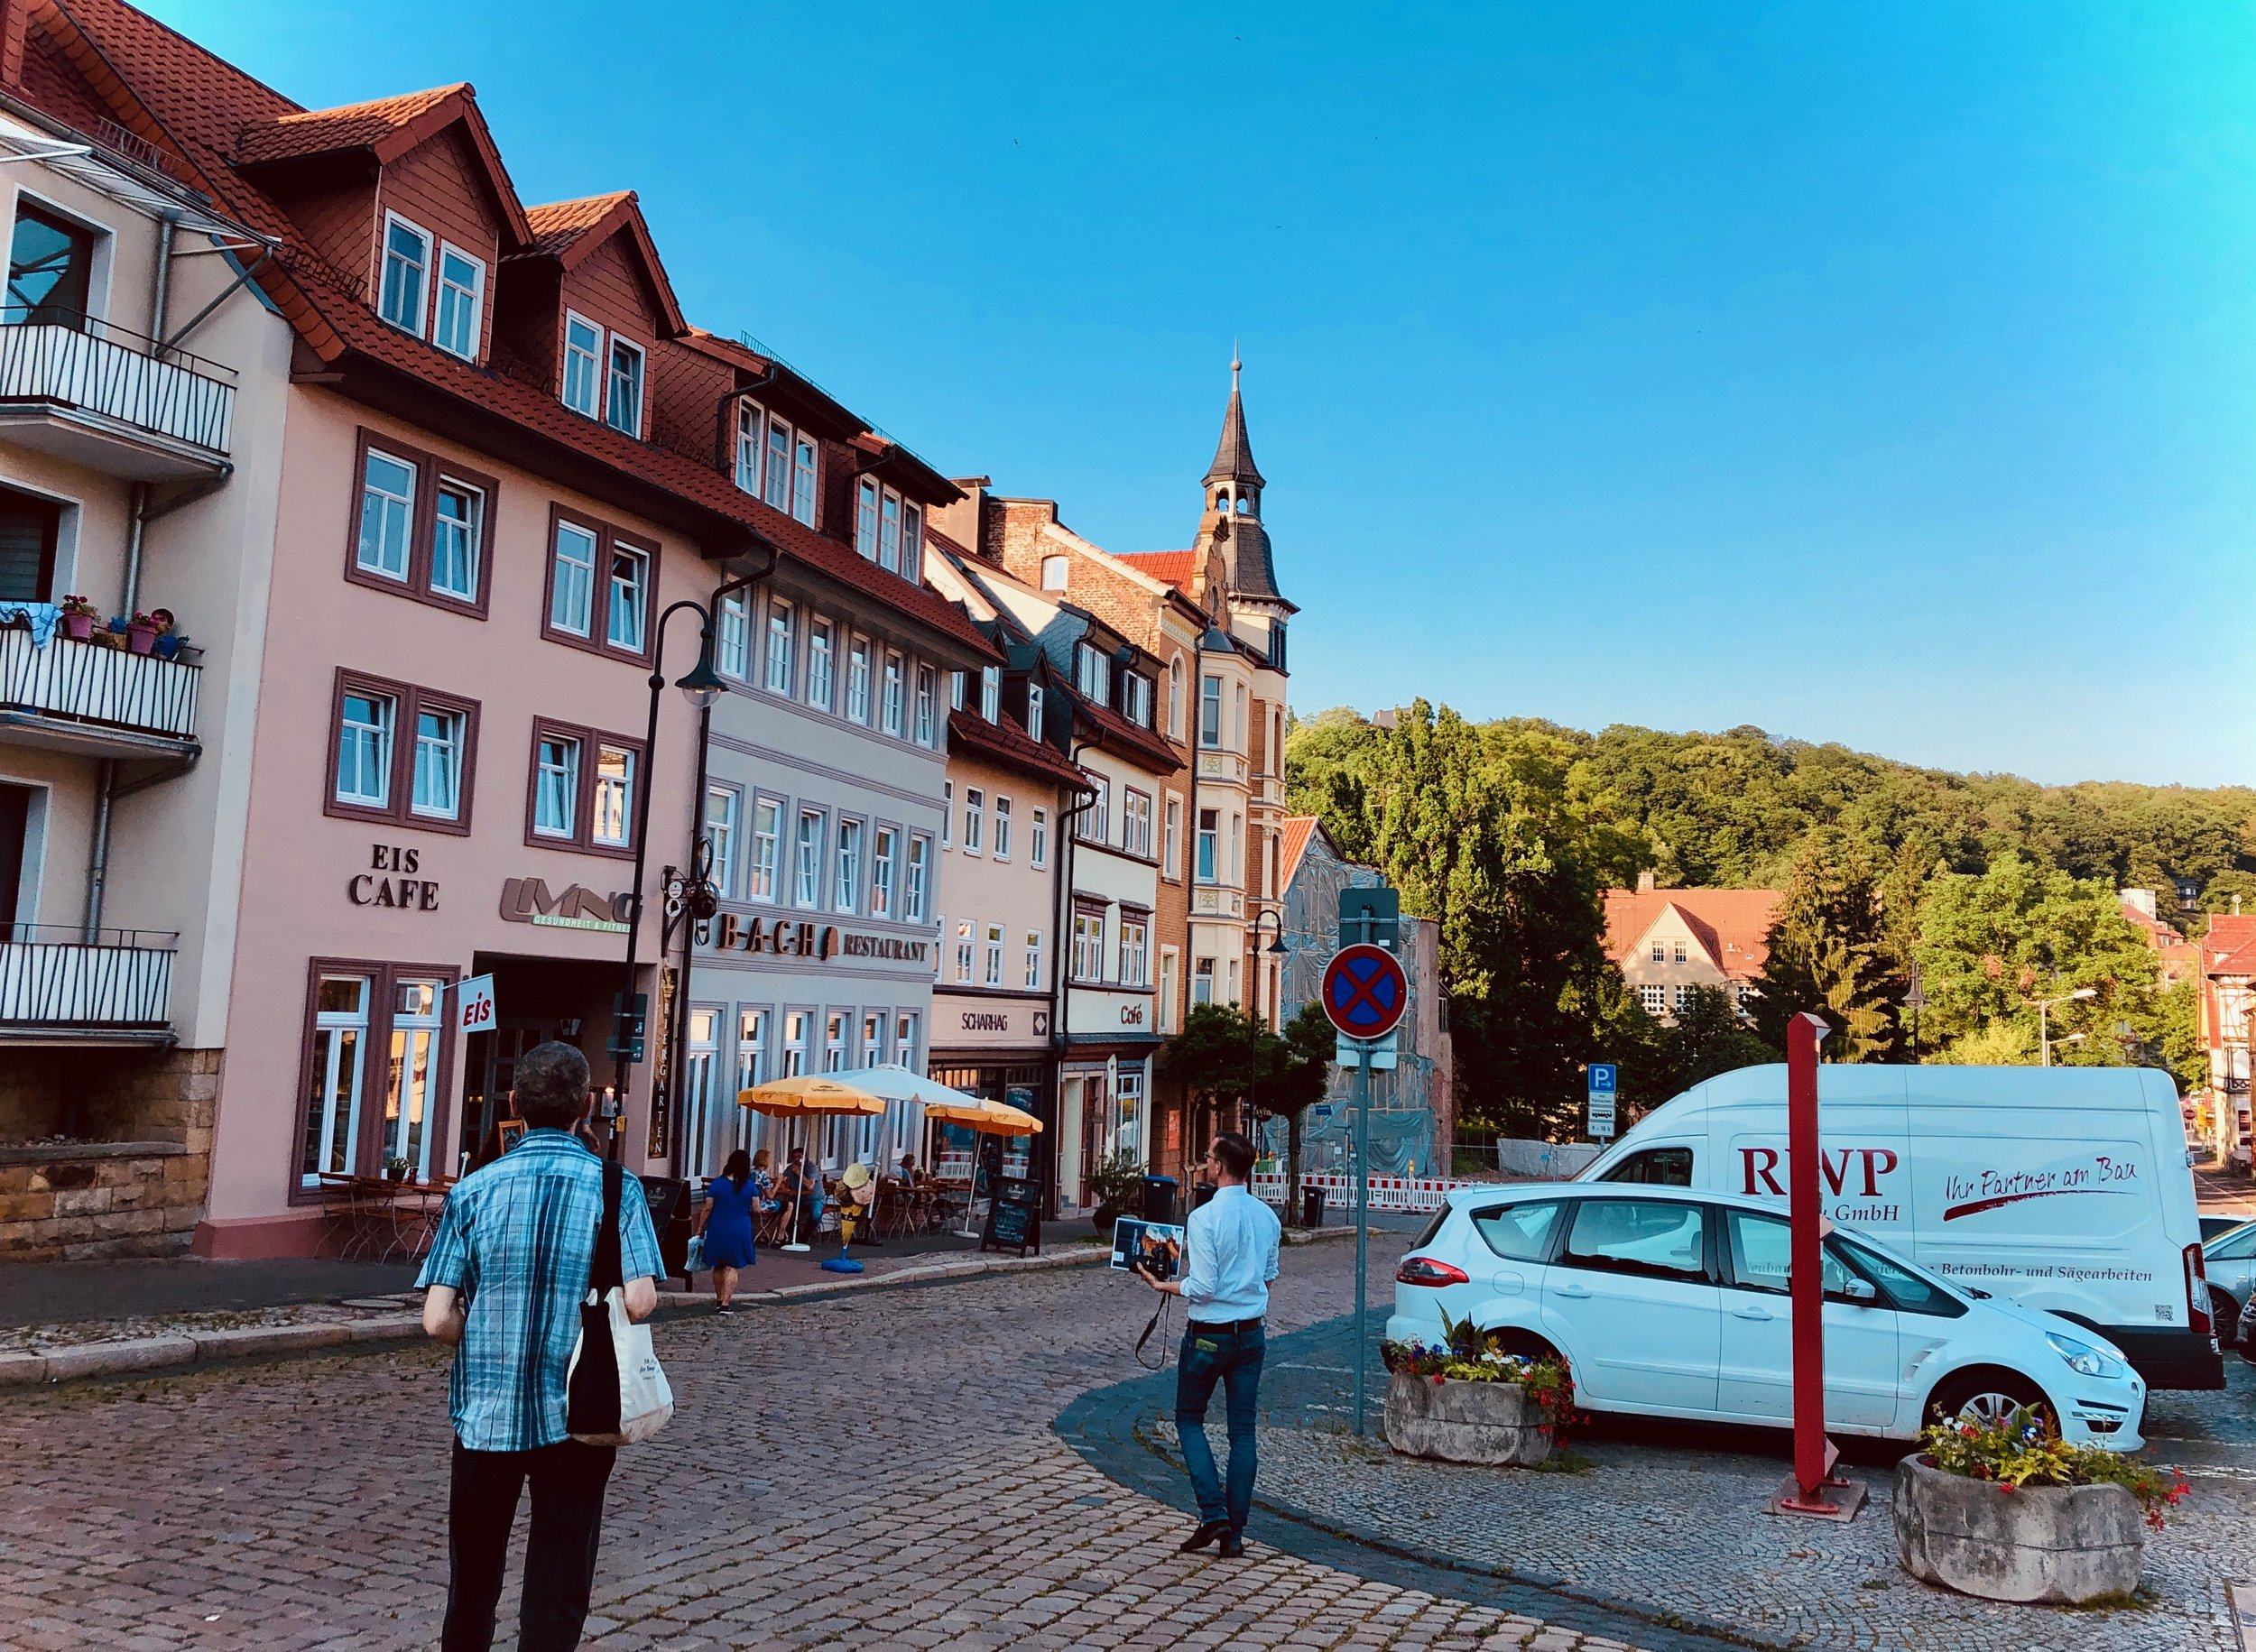 Leaving Eisenach after a fulfilling day in Thuringia.